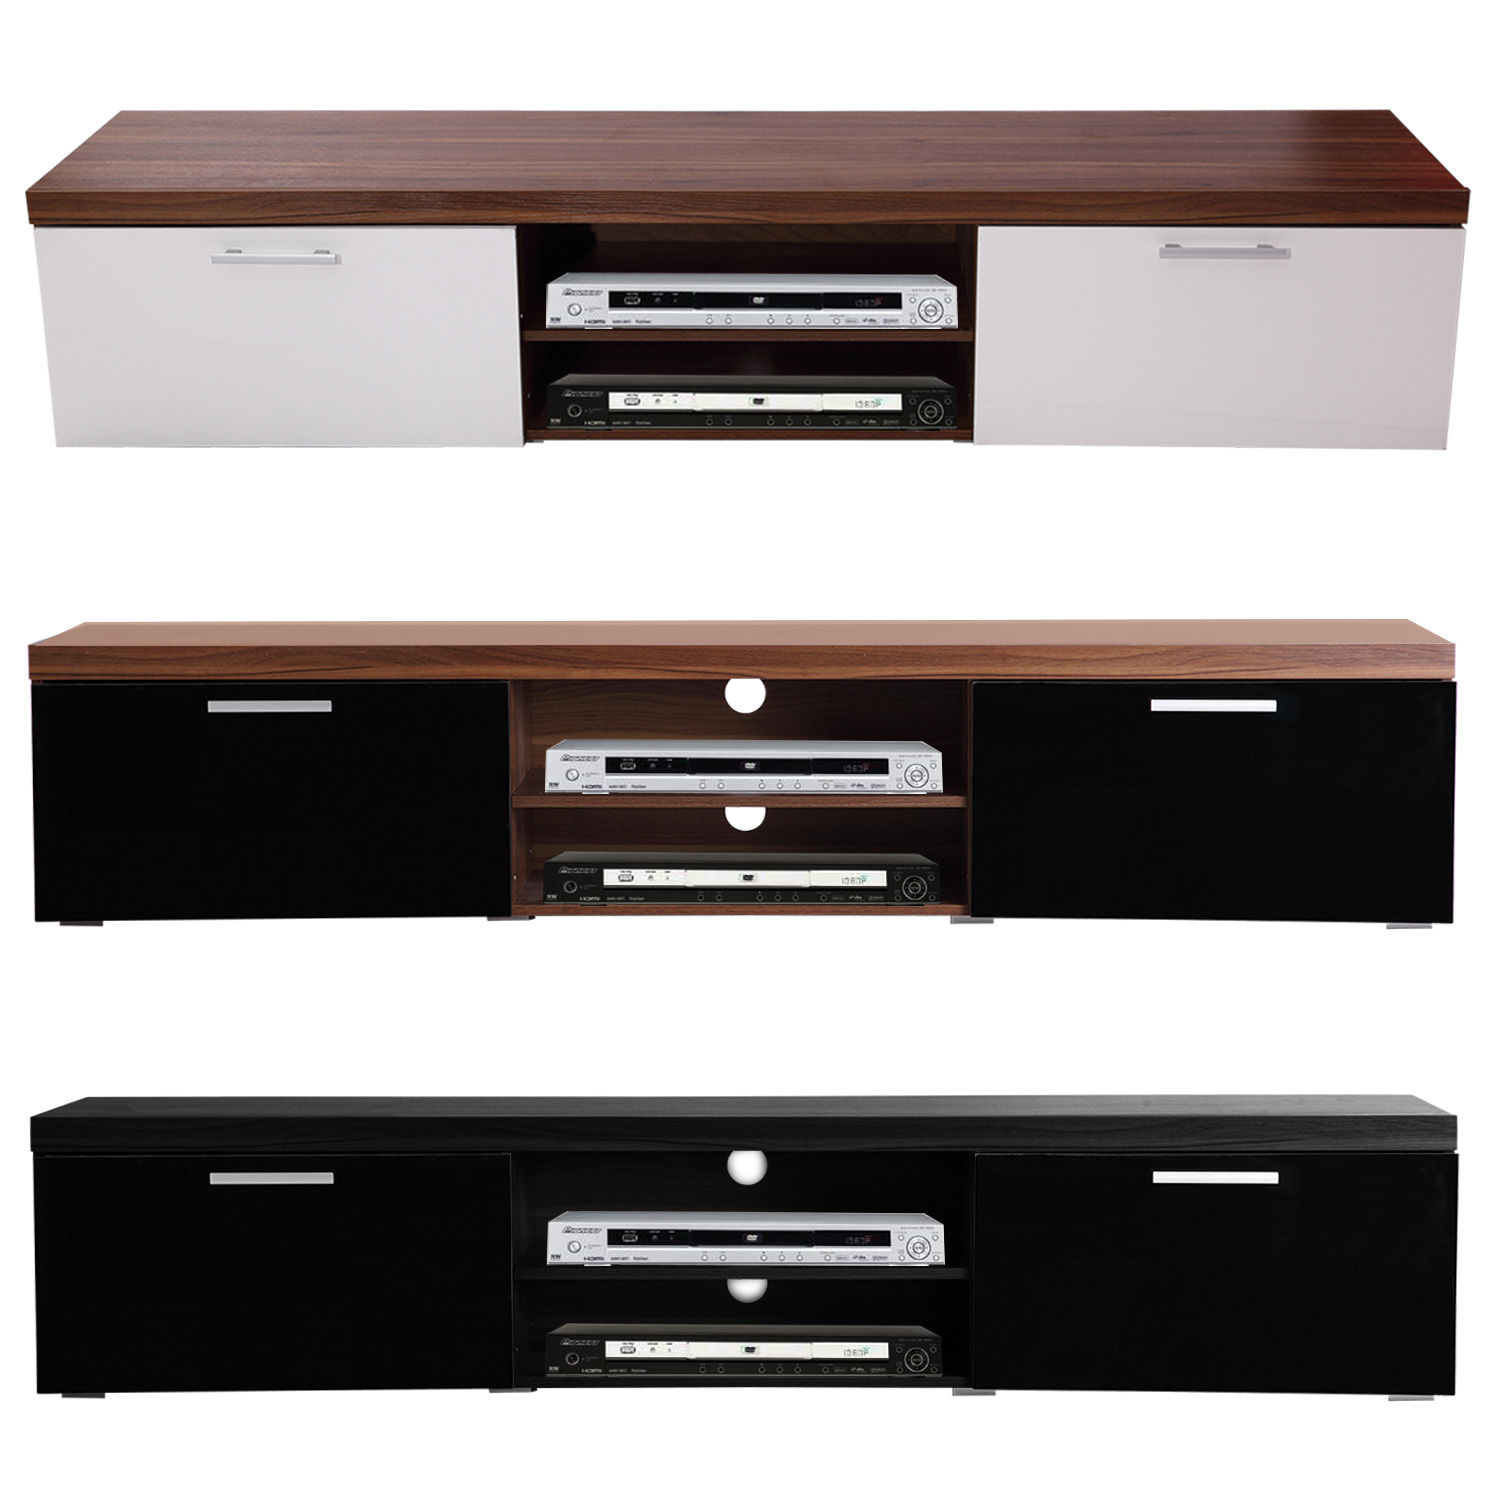 Details about 2 Meter Long 2 Door Modern TV Cabinet Plasma Low Bench Stand  Brand New